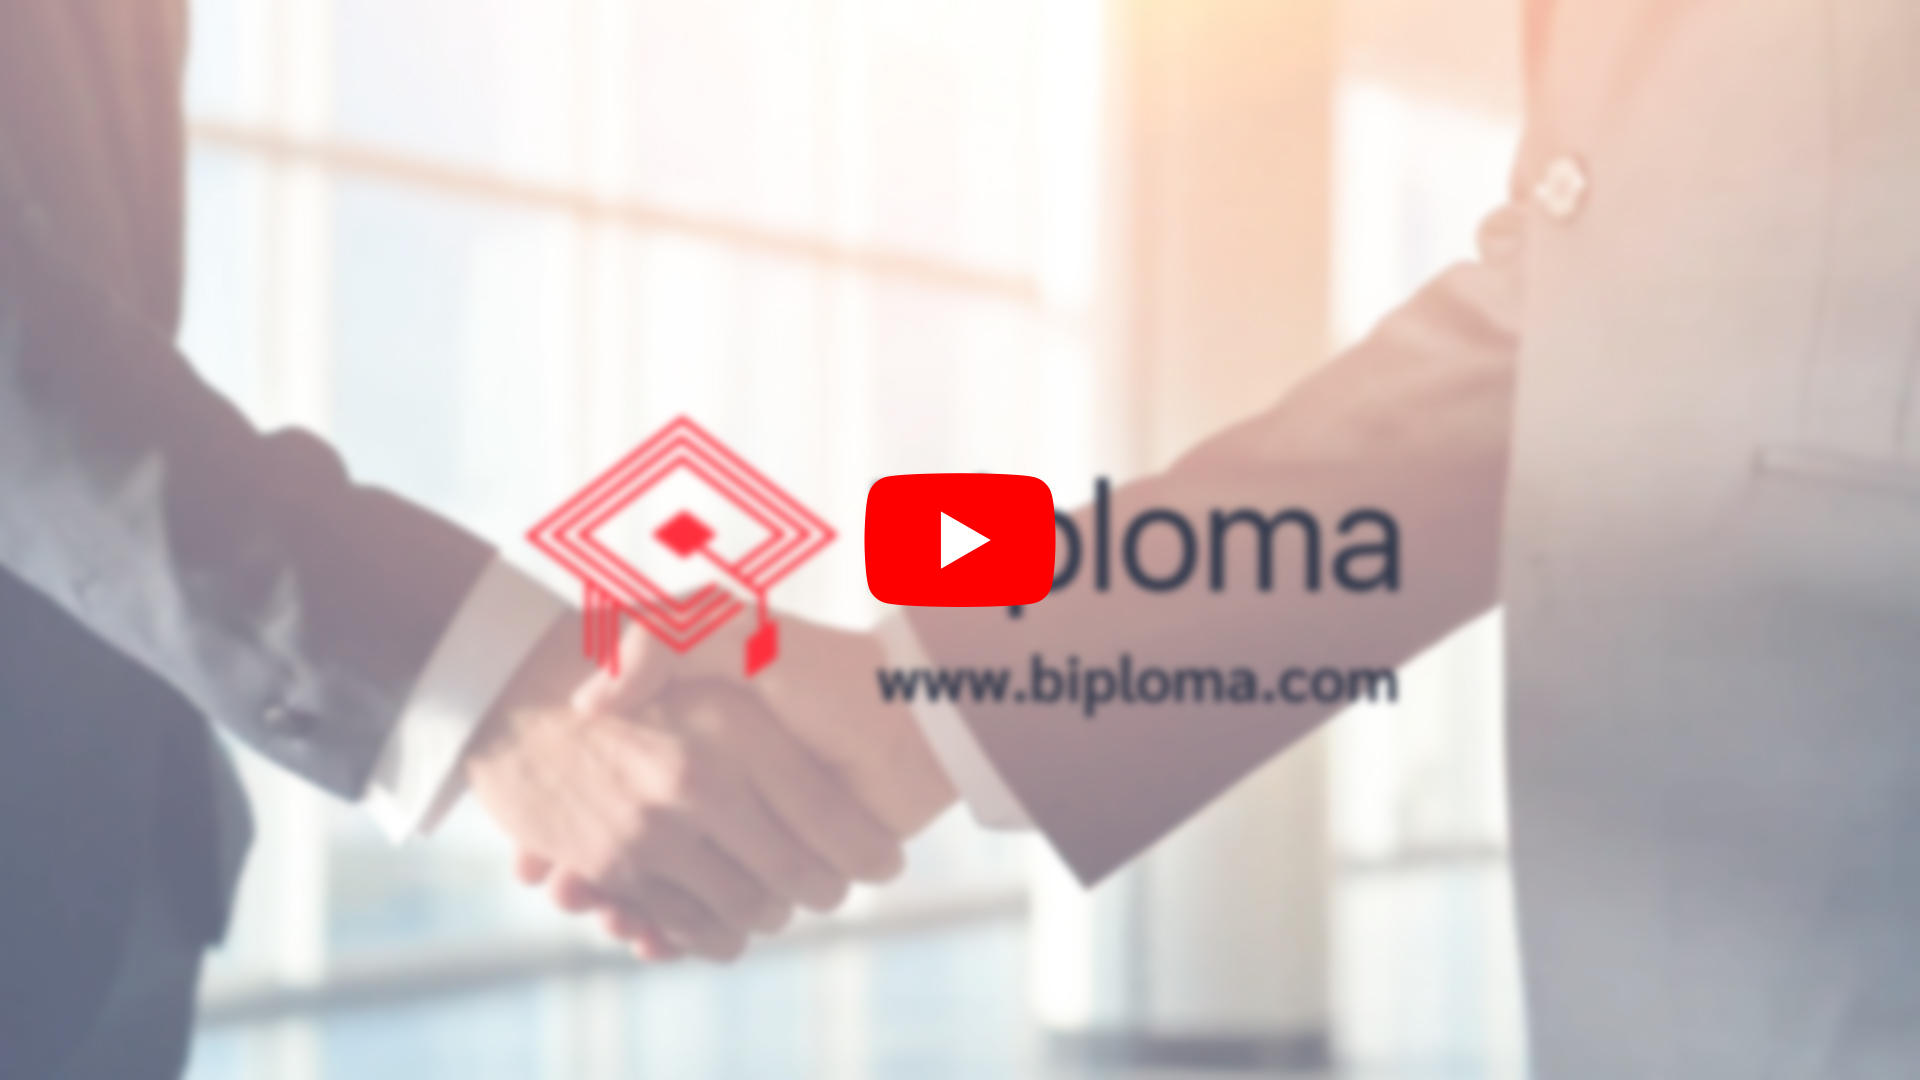 BIPLOMA - The Credential Hosting Service for Academic Institutions and Corporations